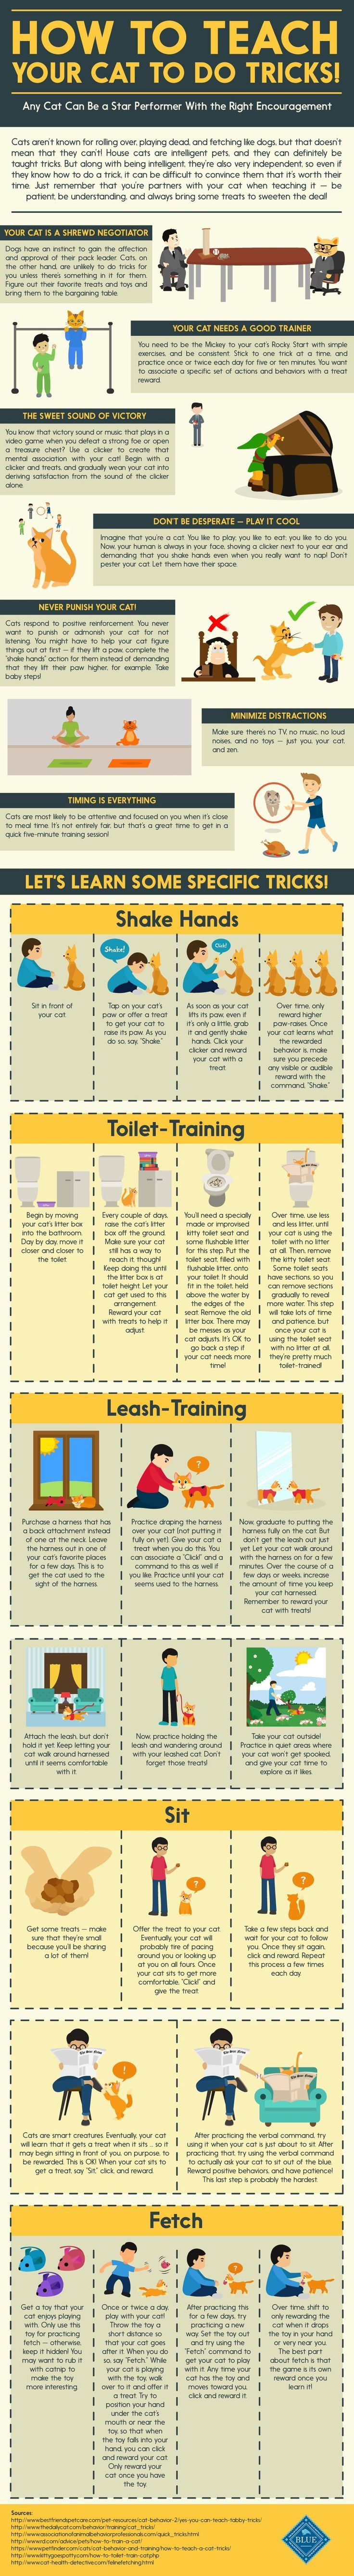 How to Teach Your Cat to do Tricks Infographic Order an oil painting of your pet today at petsinportrait.com